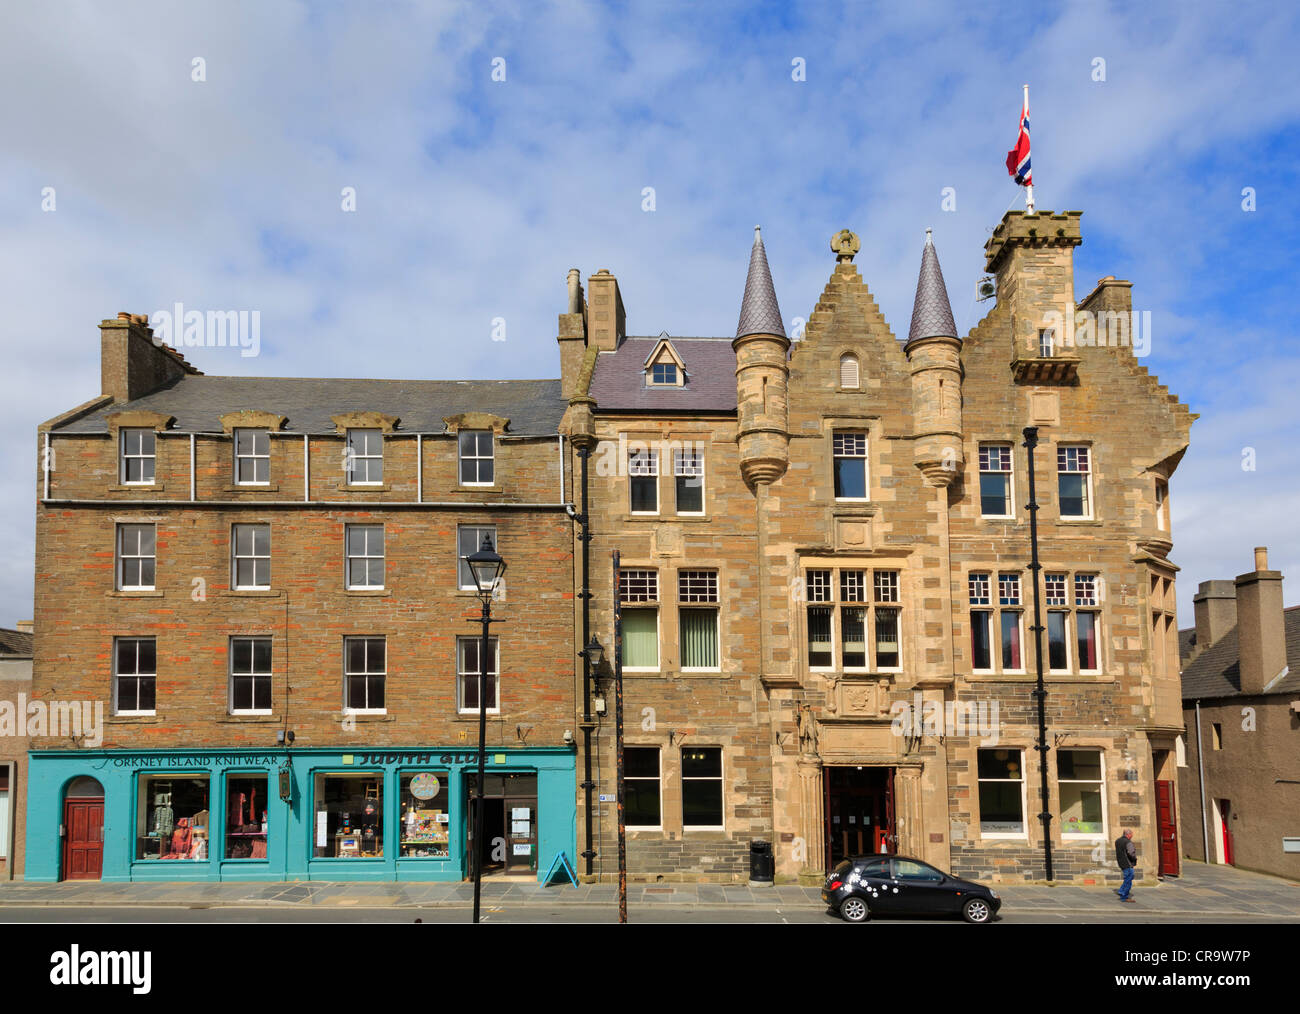 Town Hall 1884 and shop selling local crafts and knitwear in Kirkwall, Orkney Islands, Scotland, UK - Stock Image